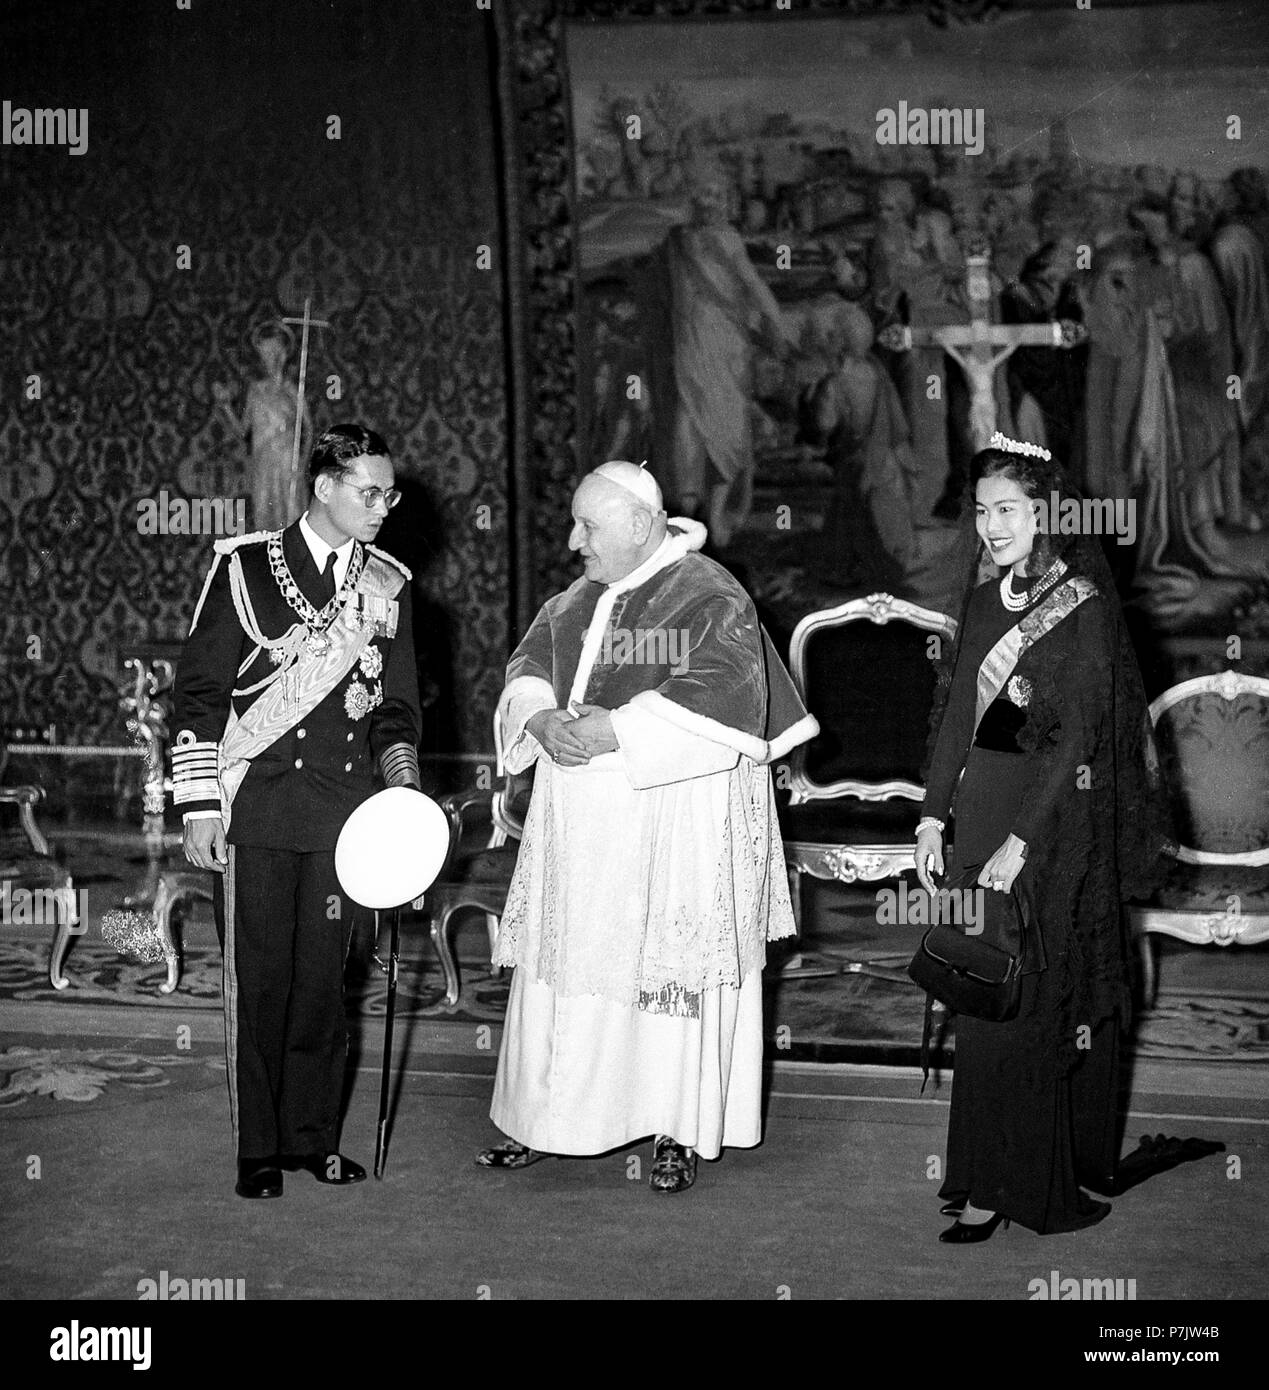 Vatican the Royals of Thailand, Bhumibol Adulyadej and Sirikit Kitigakara, on a visit to Pope John XXIII on October 1, 1960 - Stock Image